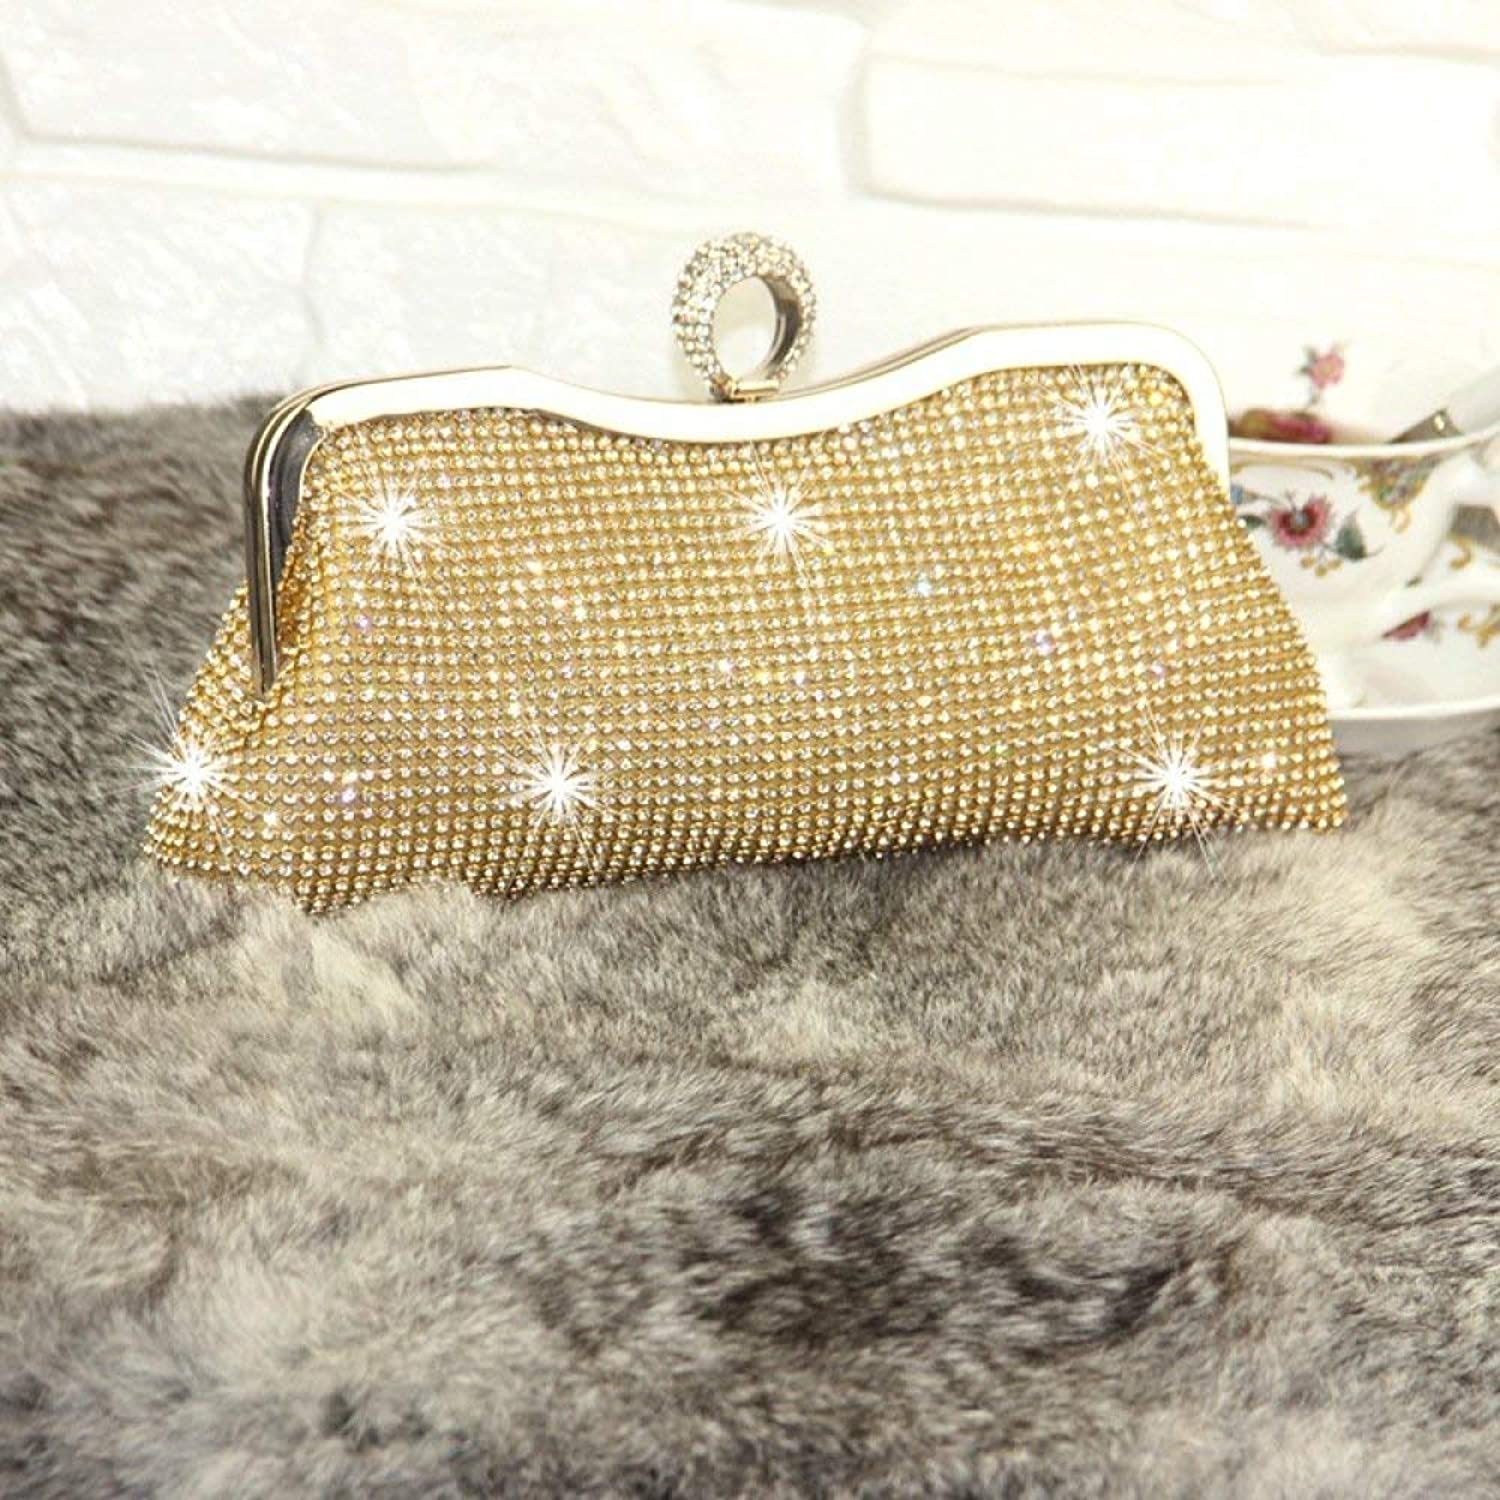 Huasen Evening Bag Diamond Dinner Bag  Celebrity Diamond Embroidered Clutch Annual Party Dress Bag  Bridal Bridesmaid Party Bag Party Handbag (color   golden, Size   Evening Package)